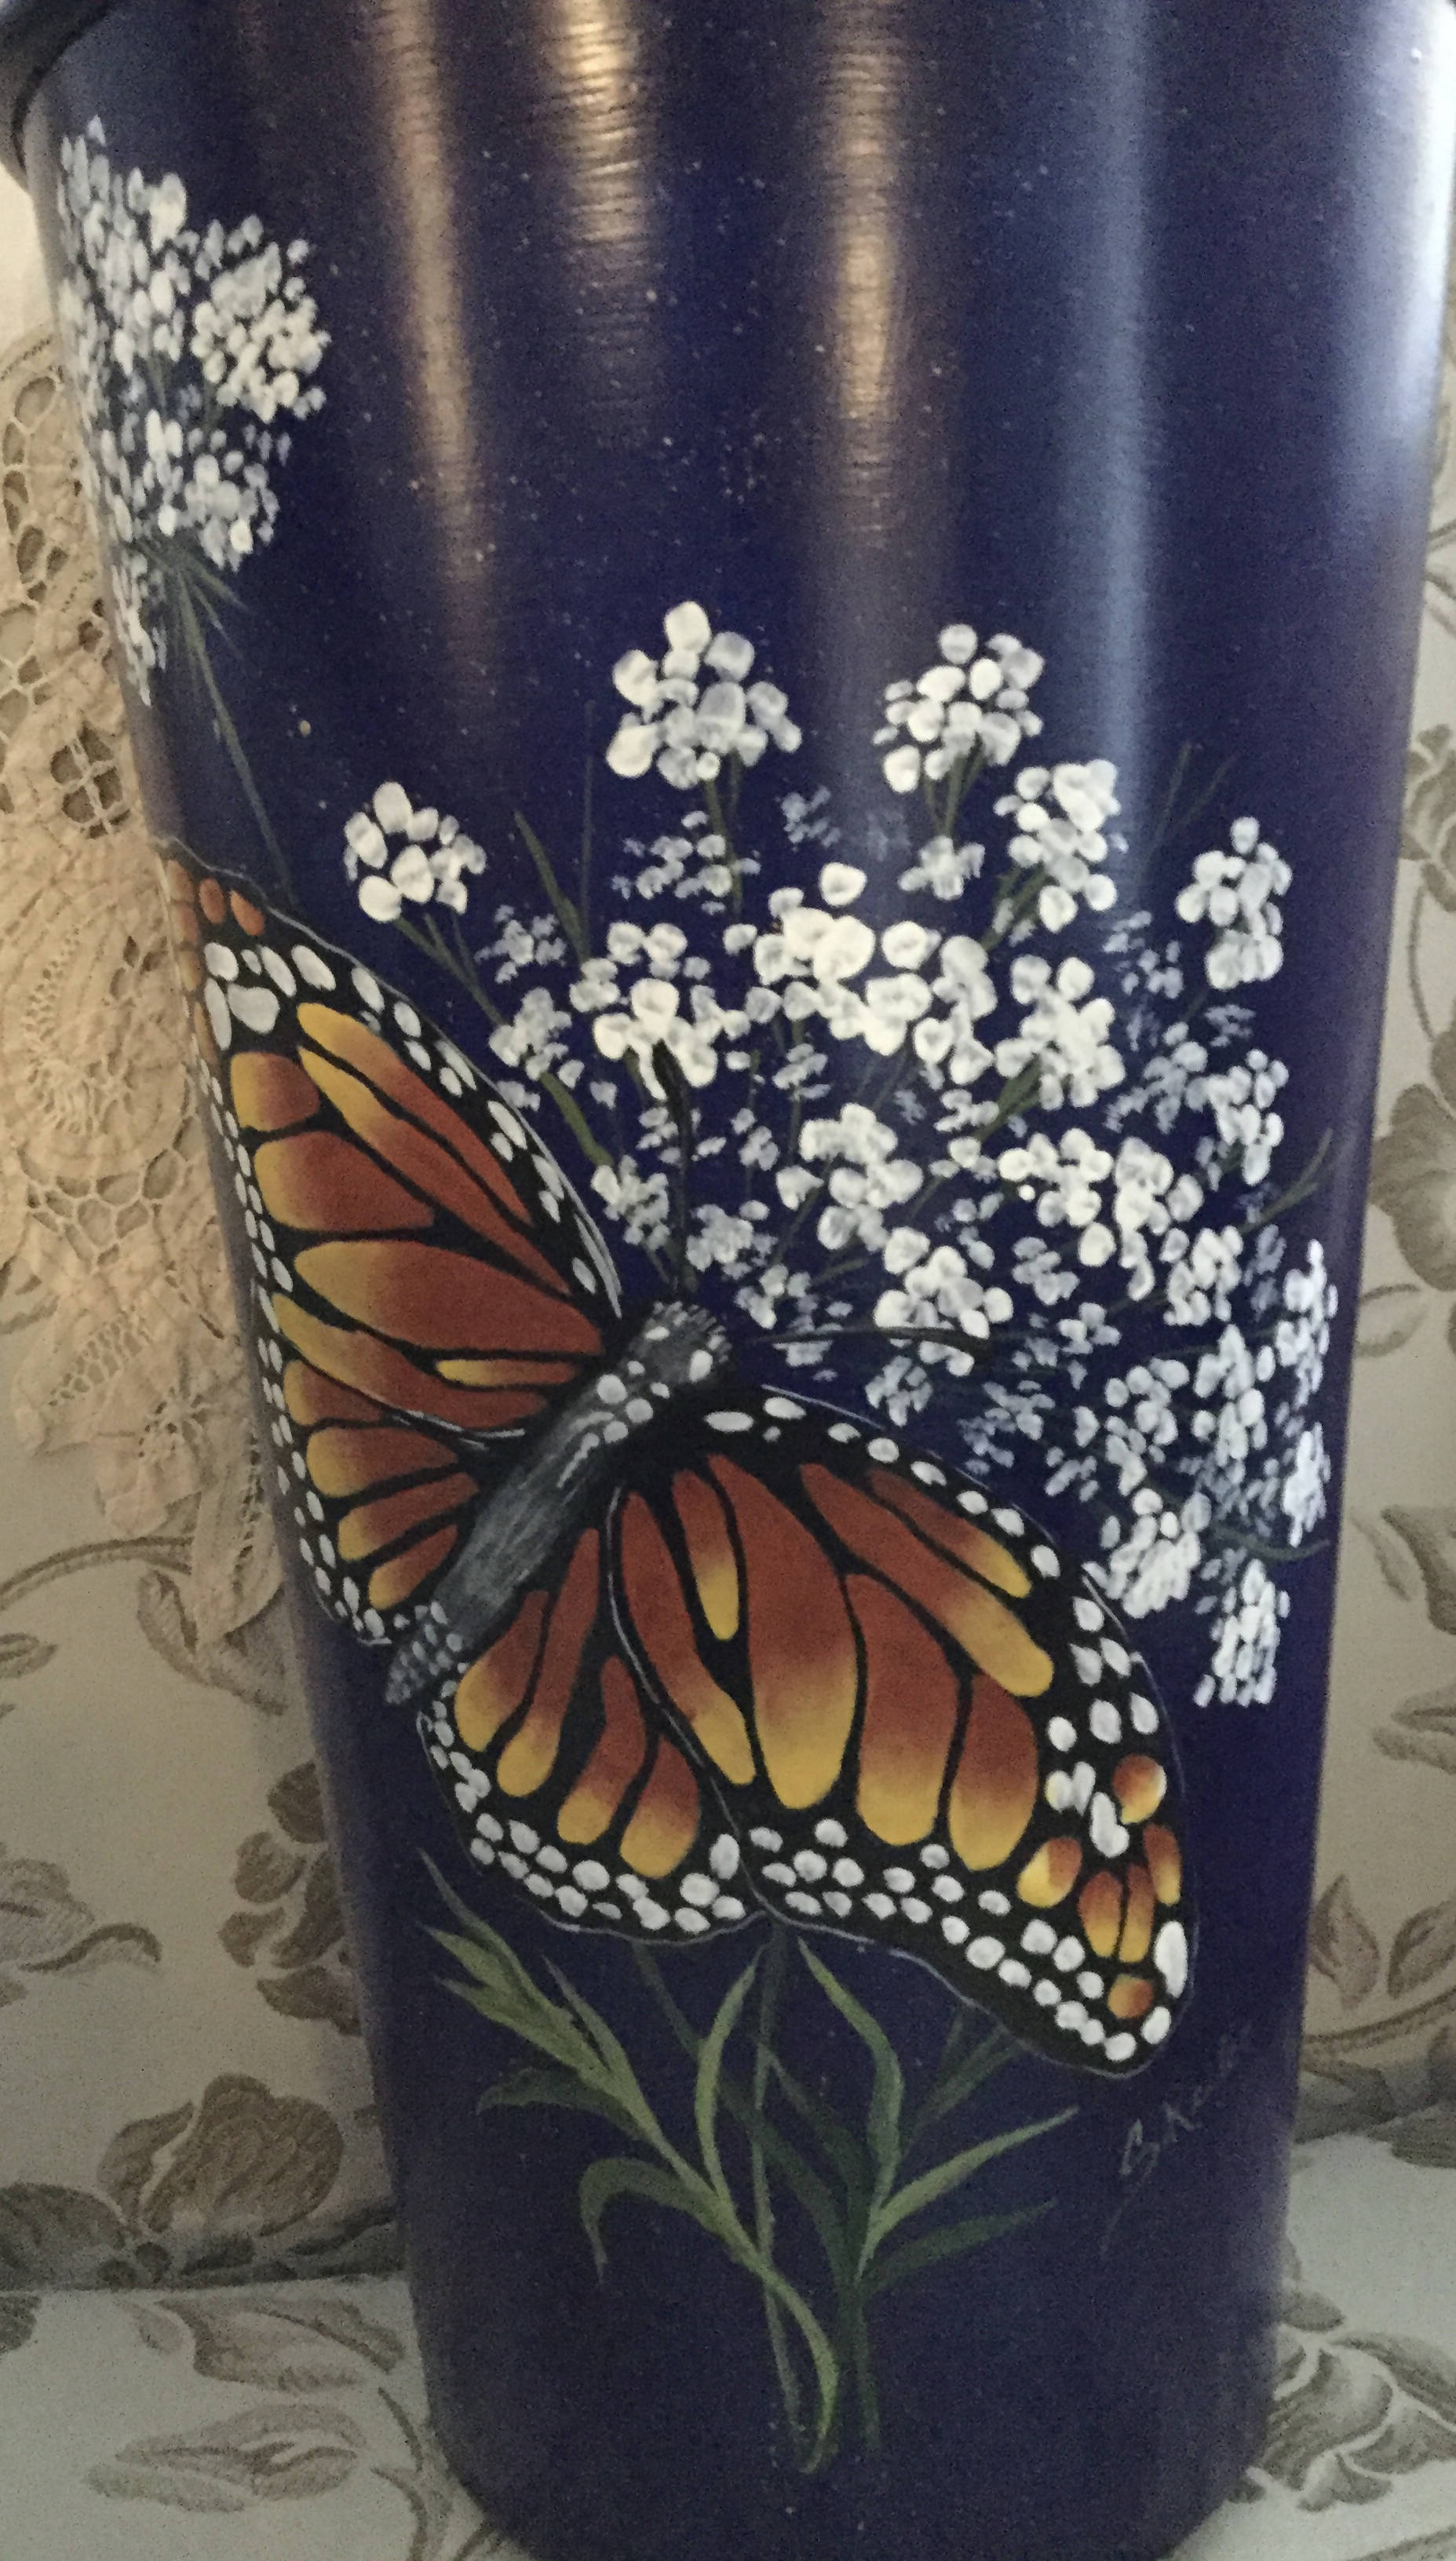 Hand Painted , Unique metal bucket painted inside and outside.Painted with a Monarch Butterfly and Queen Anne's Lace Flower